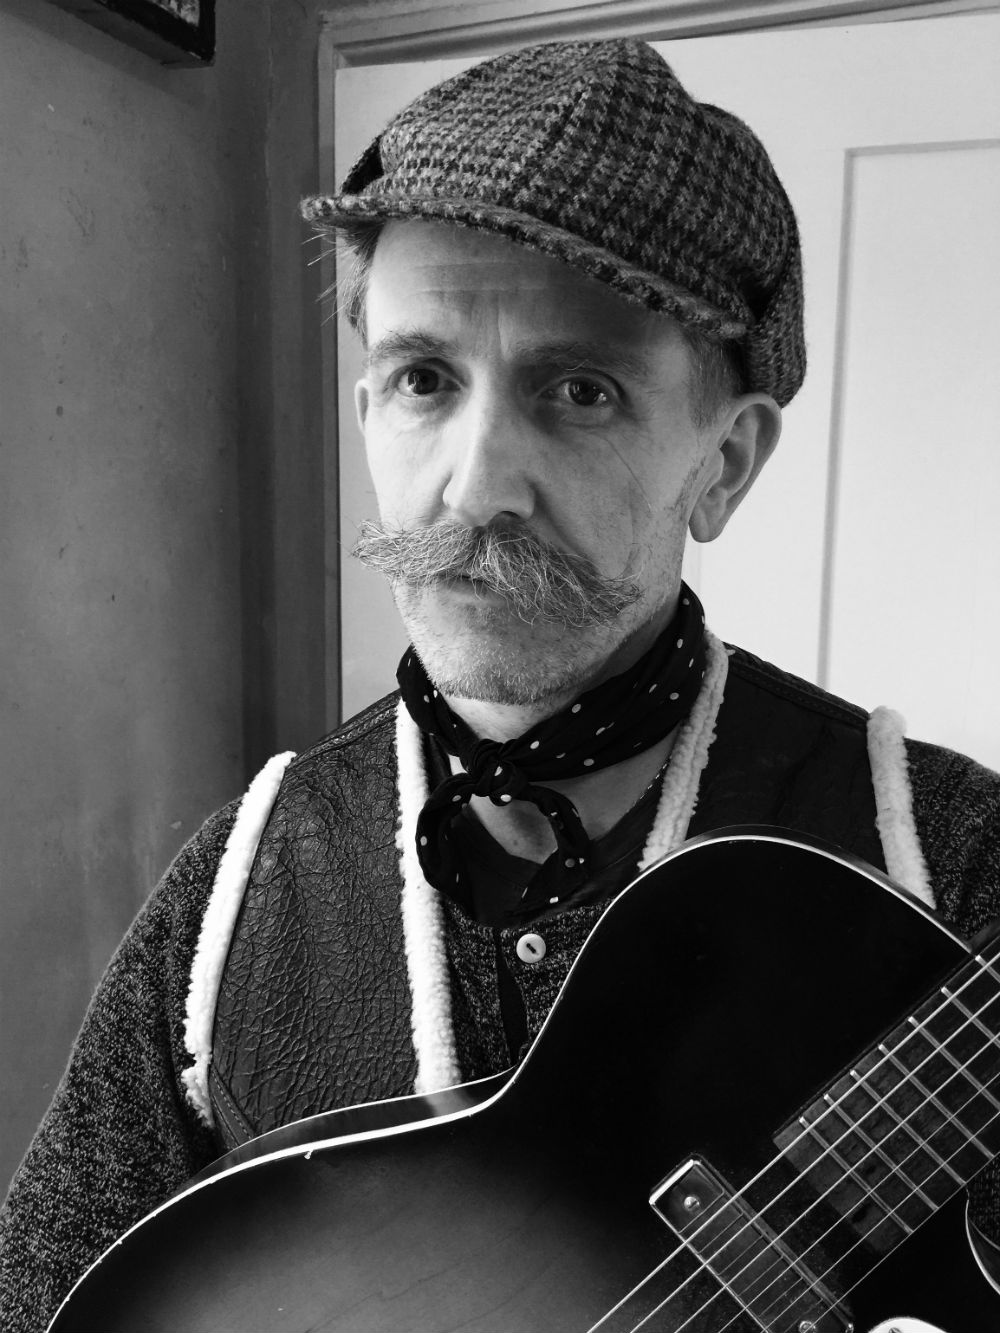 Billy_Childish-by-Brian_David_Stevens